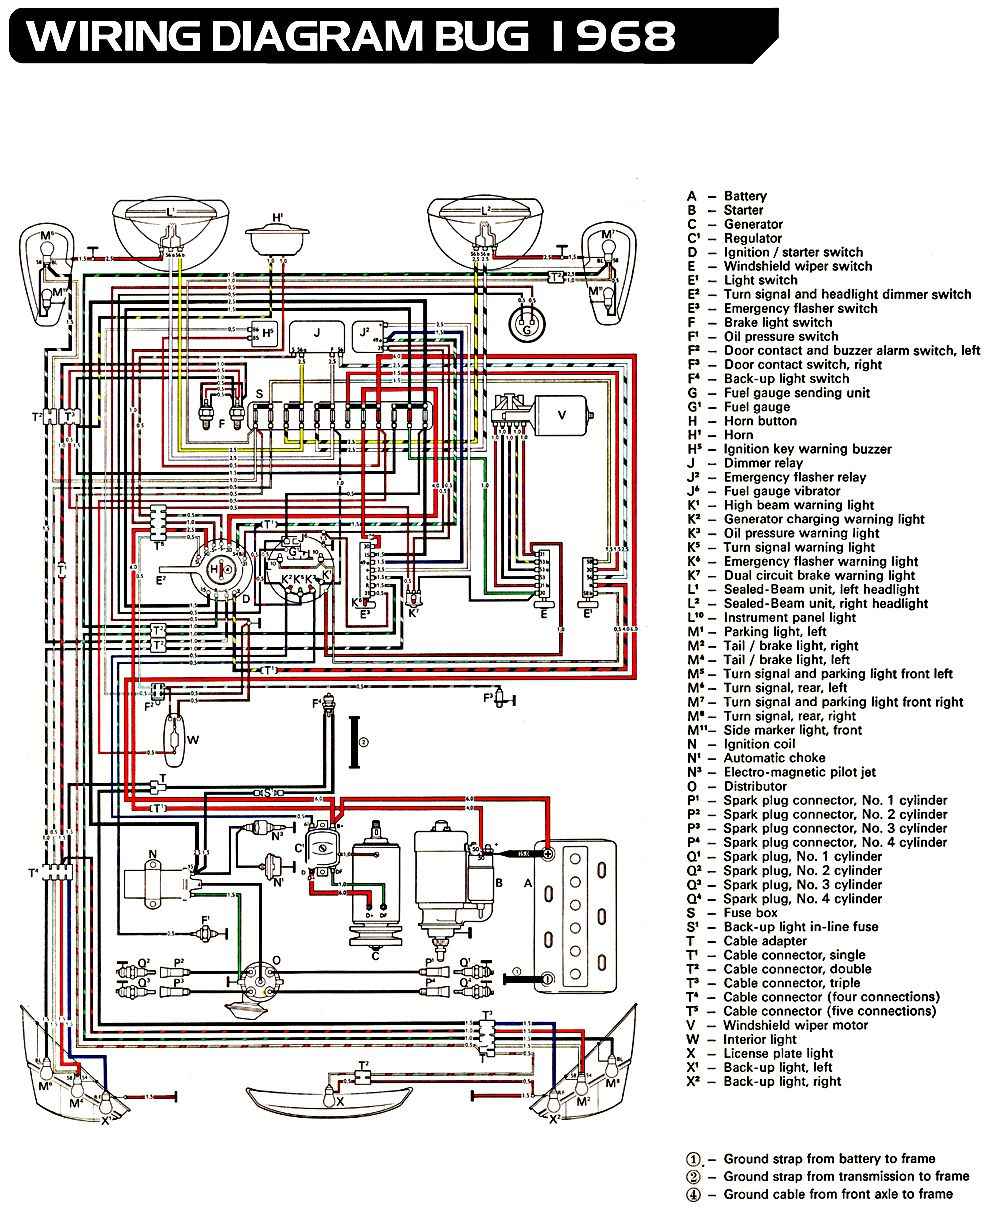 medium resolution of vw bug ignition wiring diagram 73 vw wiring diagram free vw vw bug wiring diagram 2004 vw bug wiring diagram